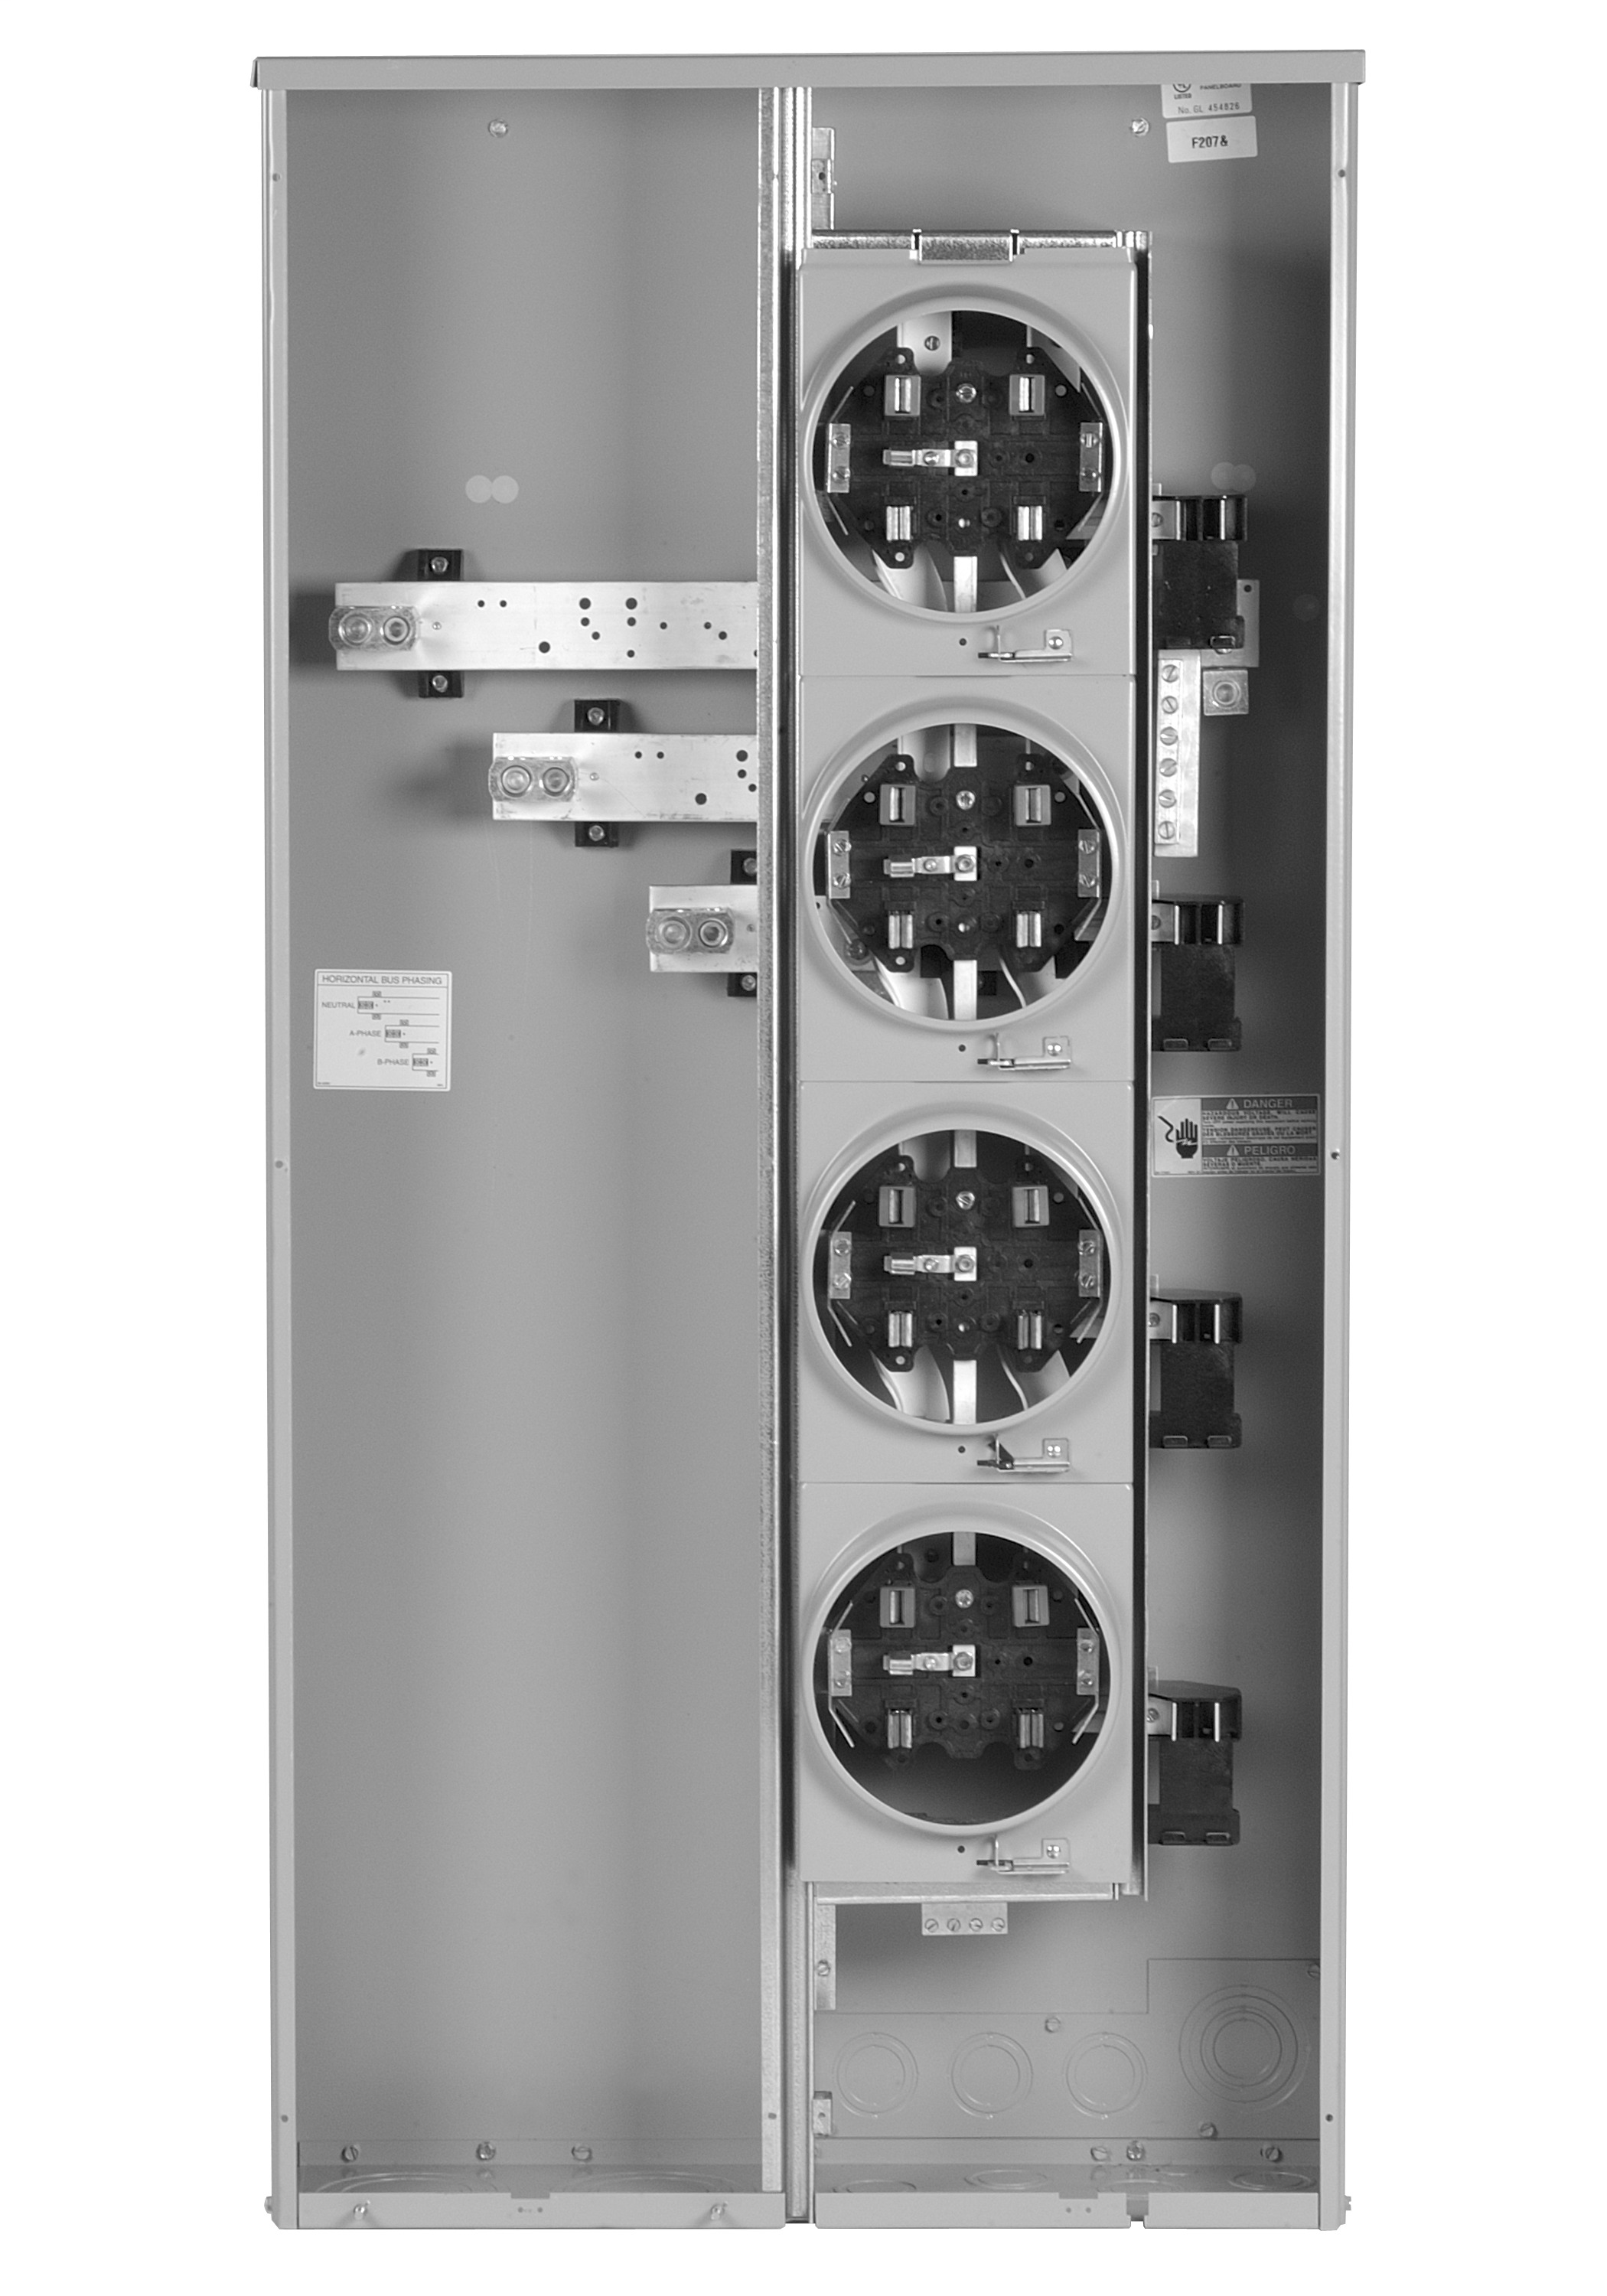 MiniModIII , 5 - 125 Amp, 1 Phase/3 Wire Ring-type sockets, 600 Amp Bus Rating, Indoor/Outdoor Construction (NEMA 1/3R)